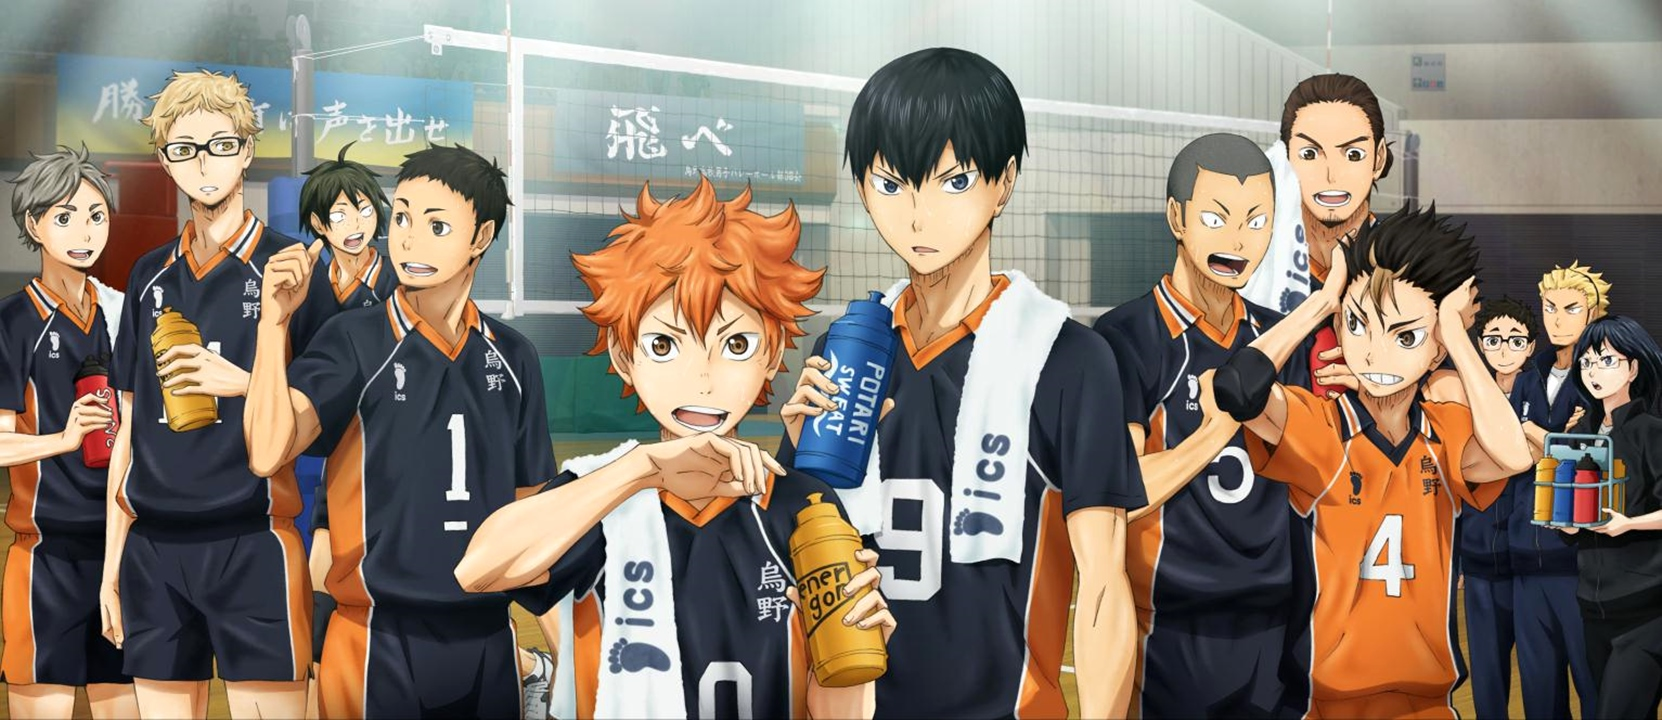 10,000 Anime Fans Voted for the Fictional Schools They Want to Study At haruhichan.com Karasuno High Haikyuu!!